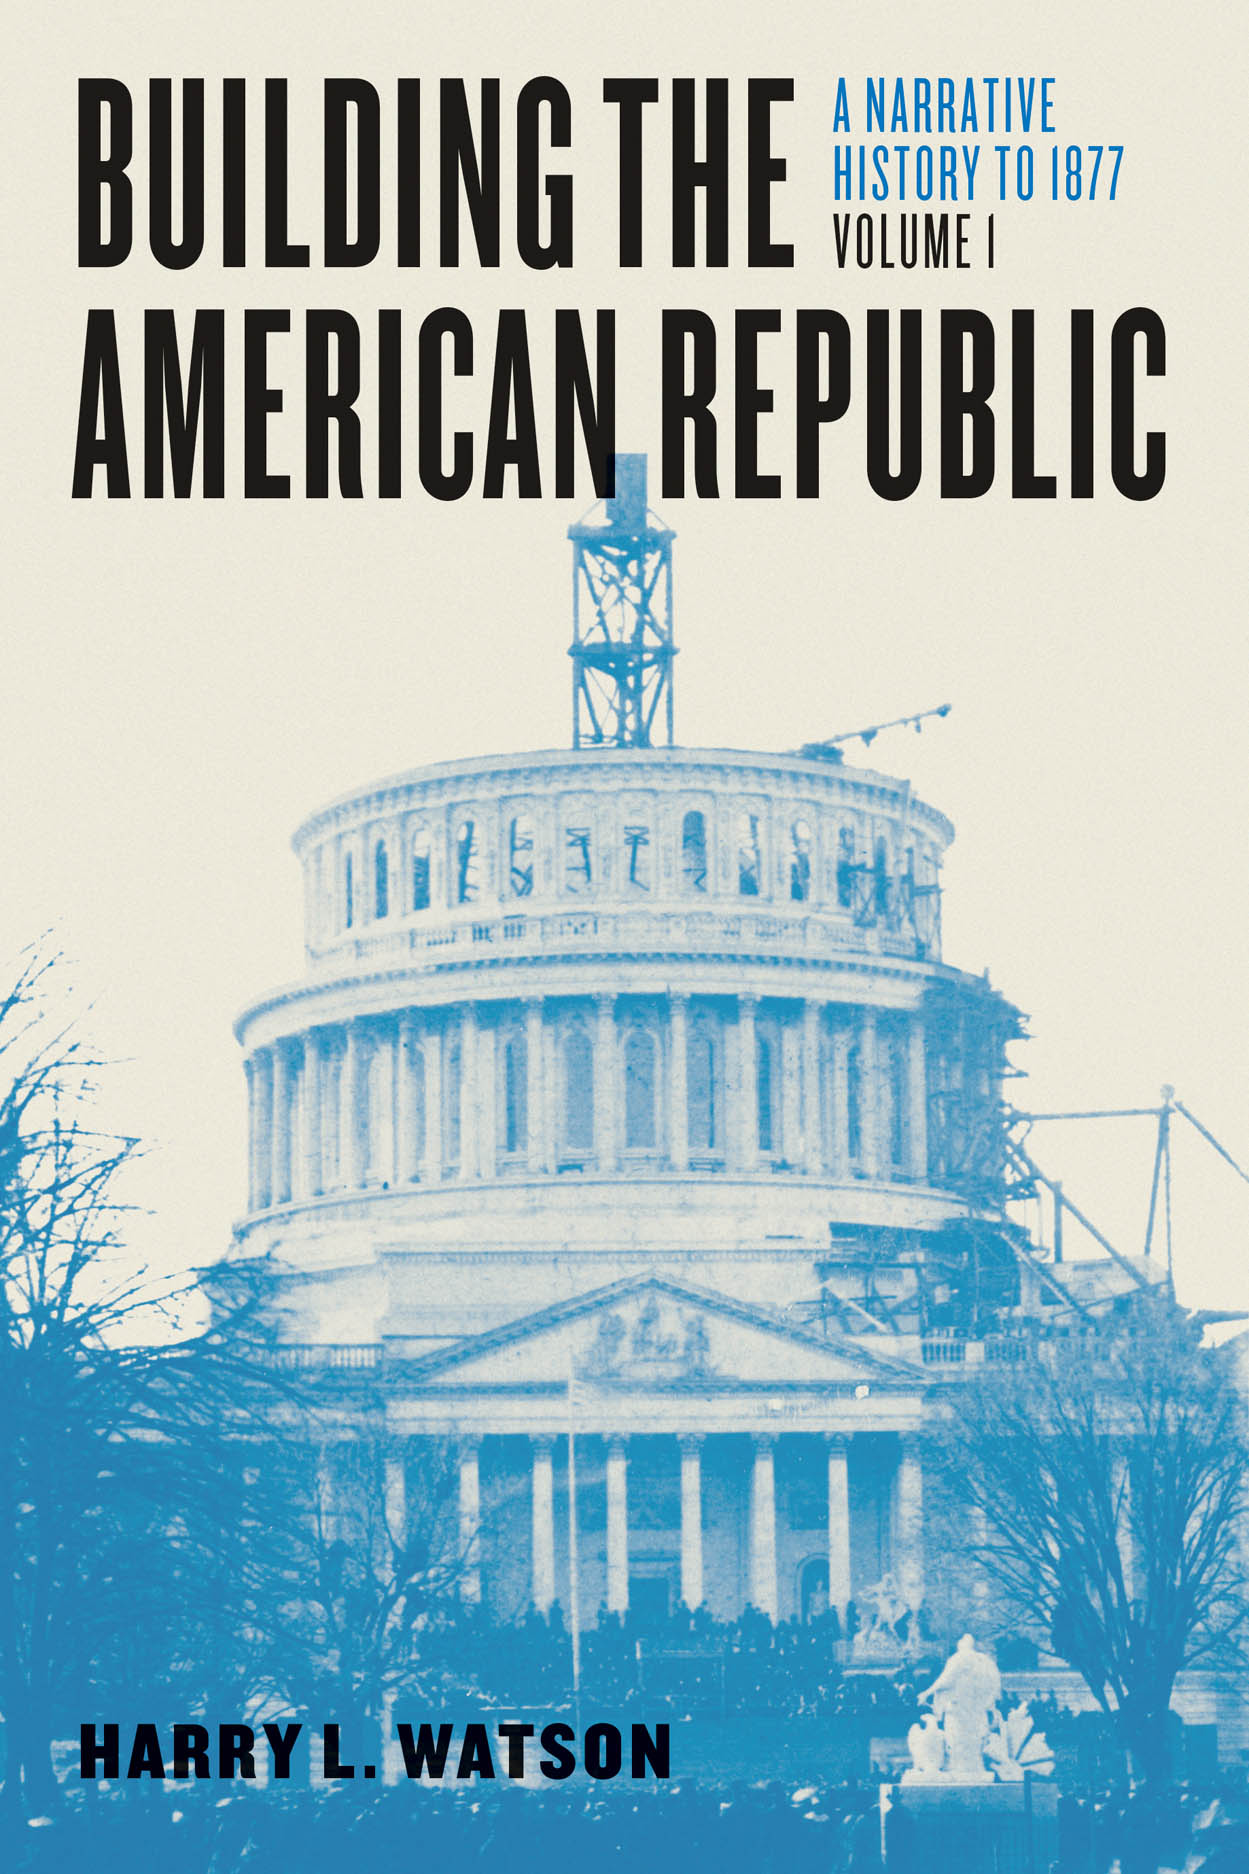 Building the American Republic, Volume 1